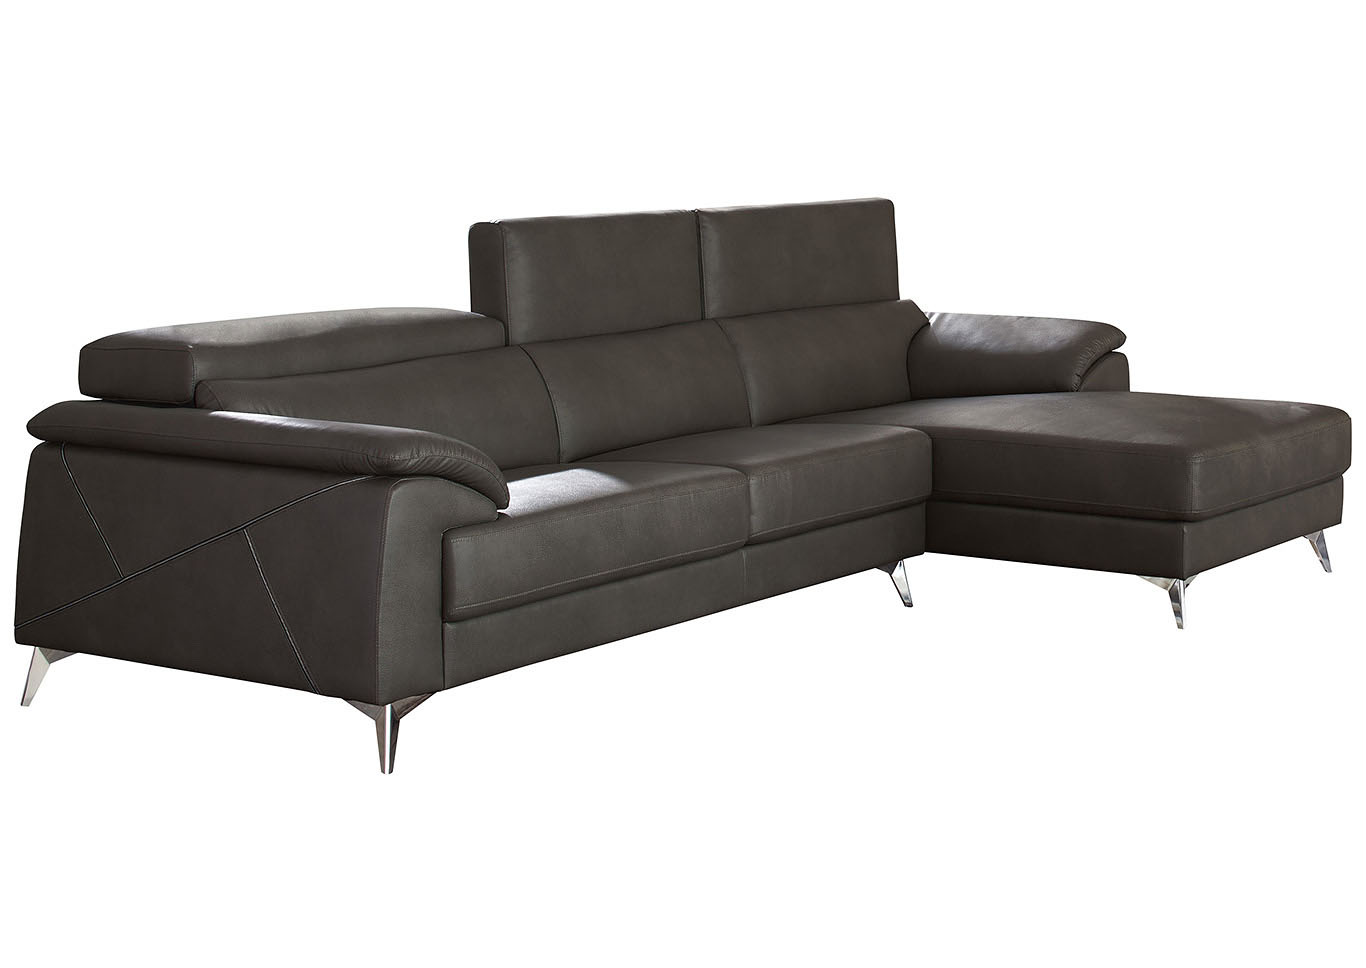 Chaises Discount Long Island Discount Furniture Tindell Gray Raf Chaise Sectional